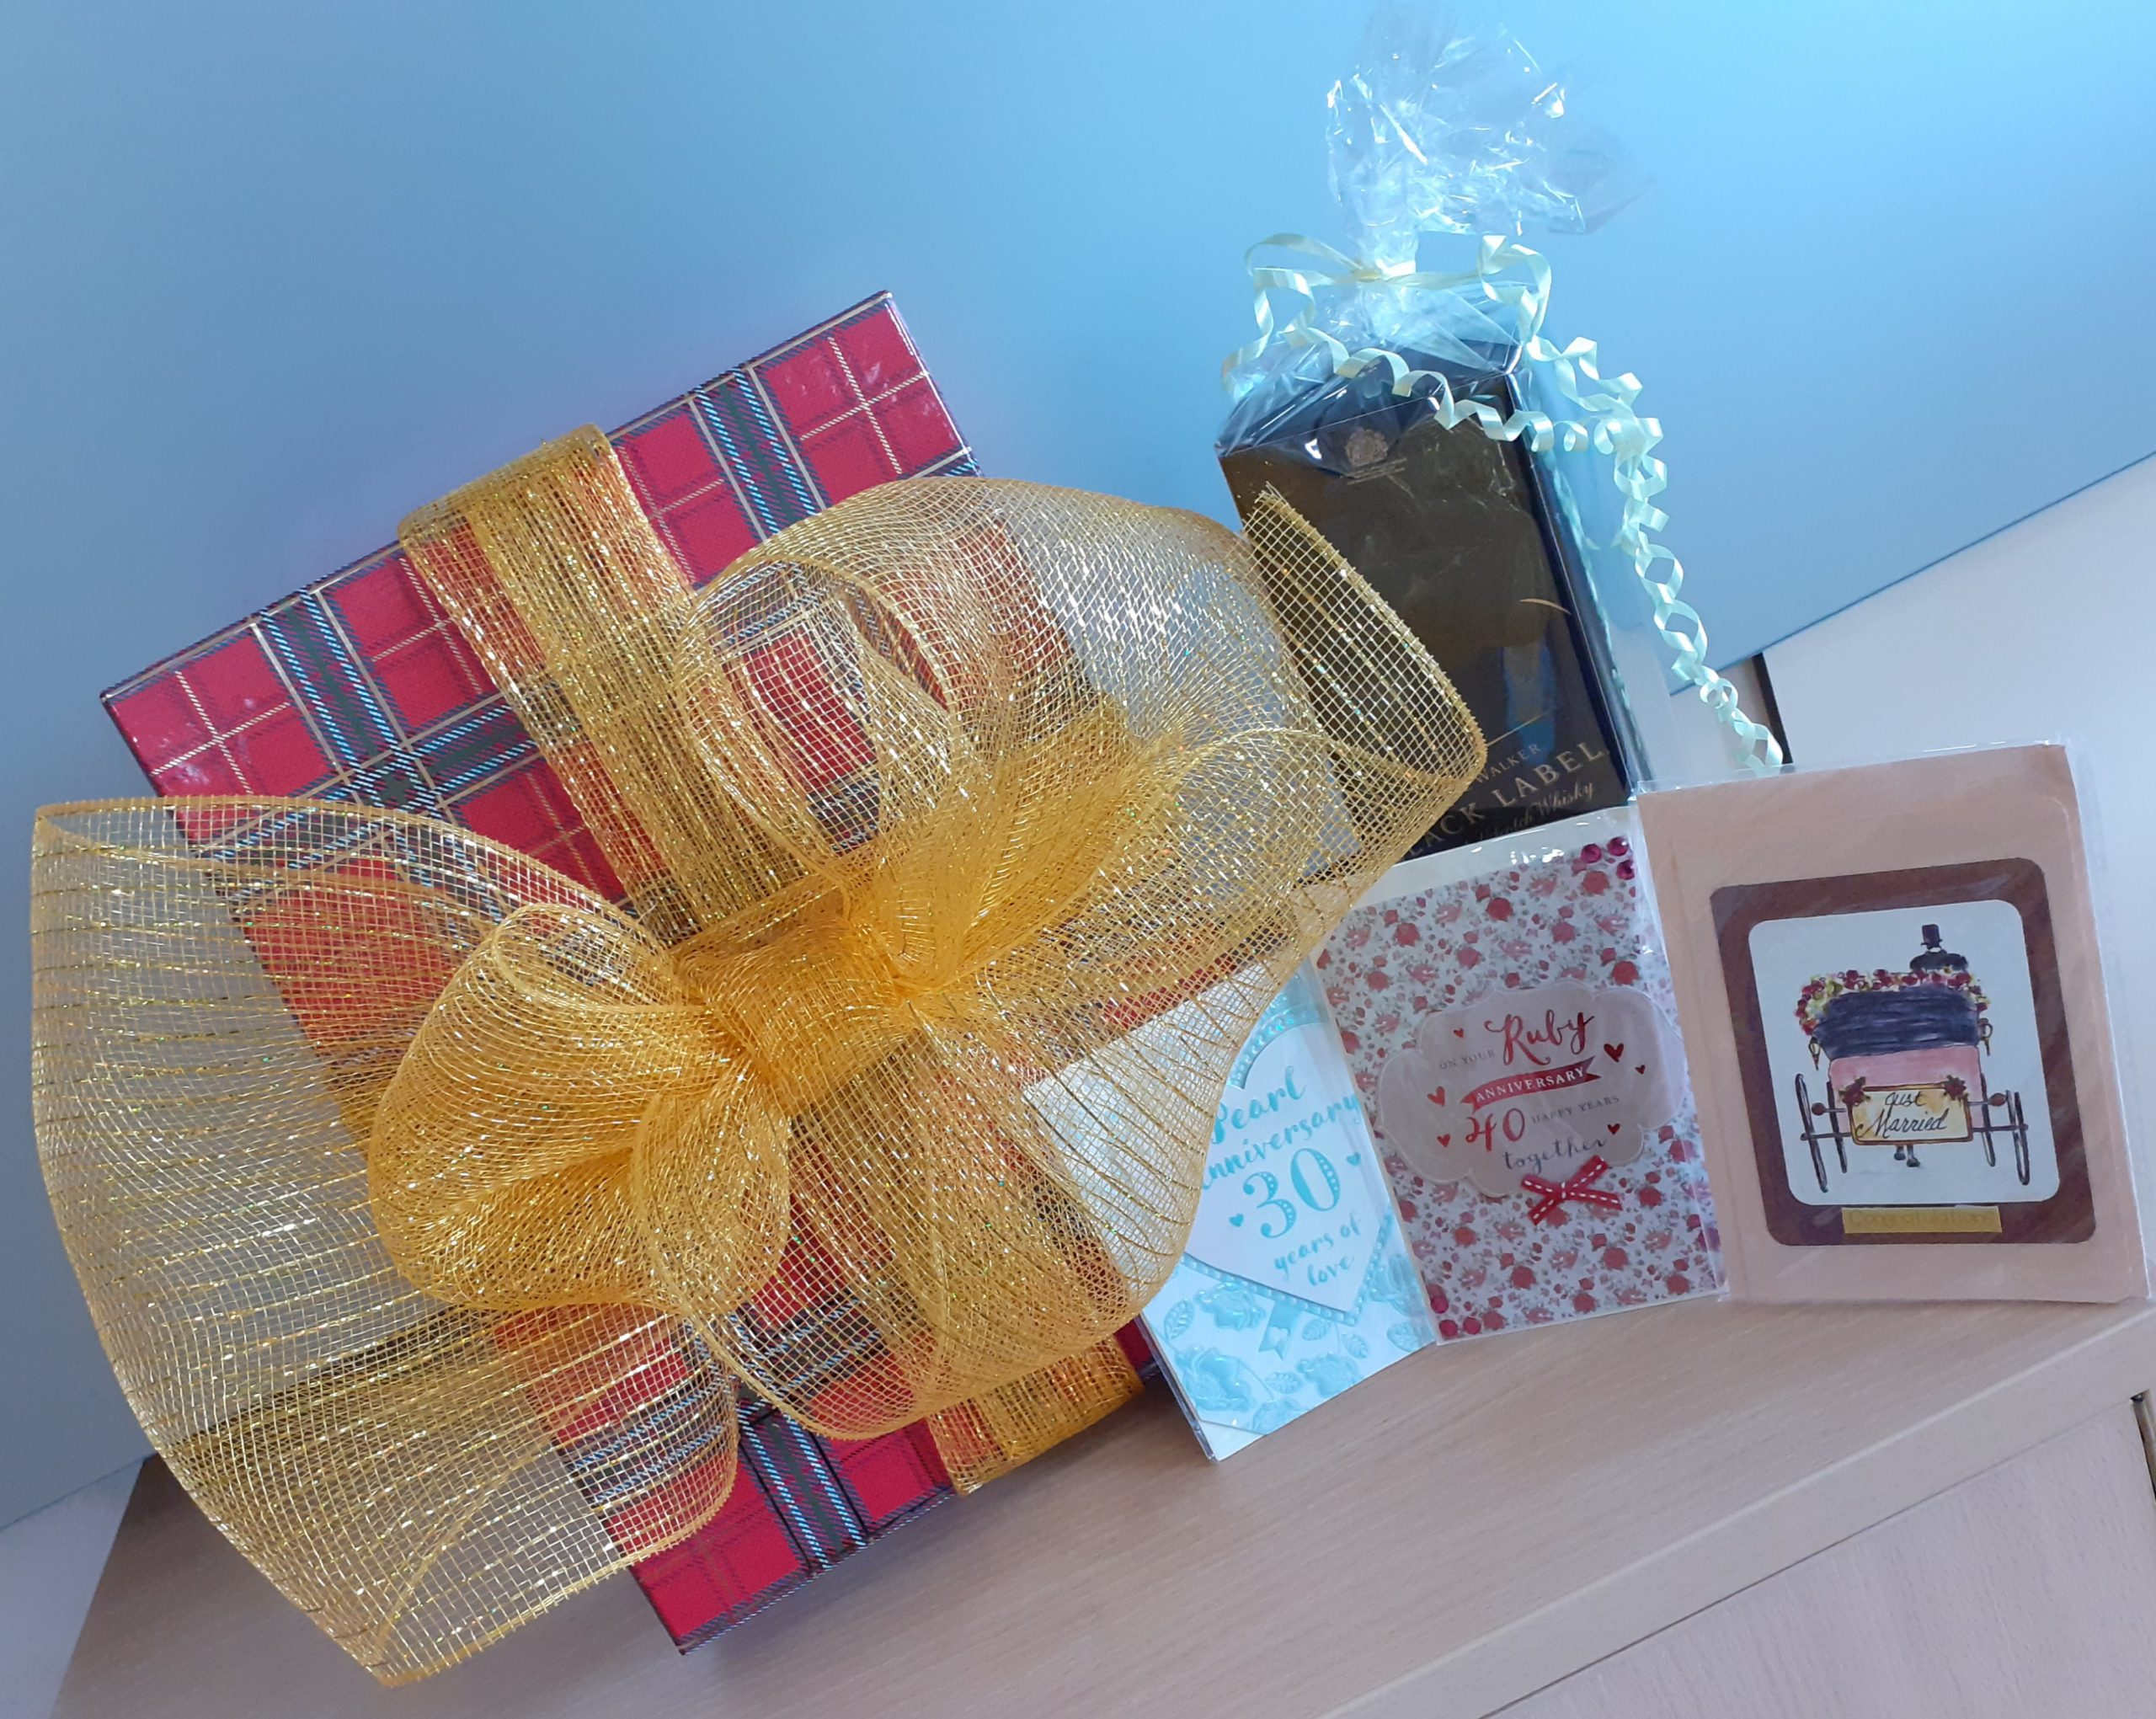 Day 6: Special occasions box